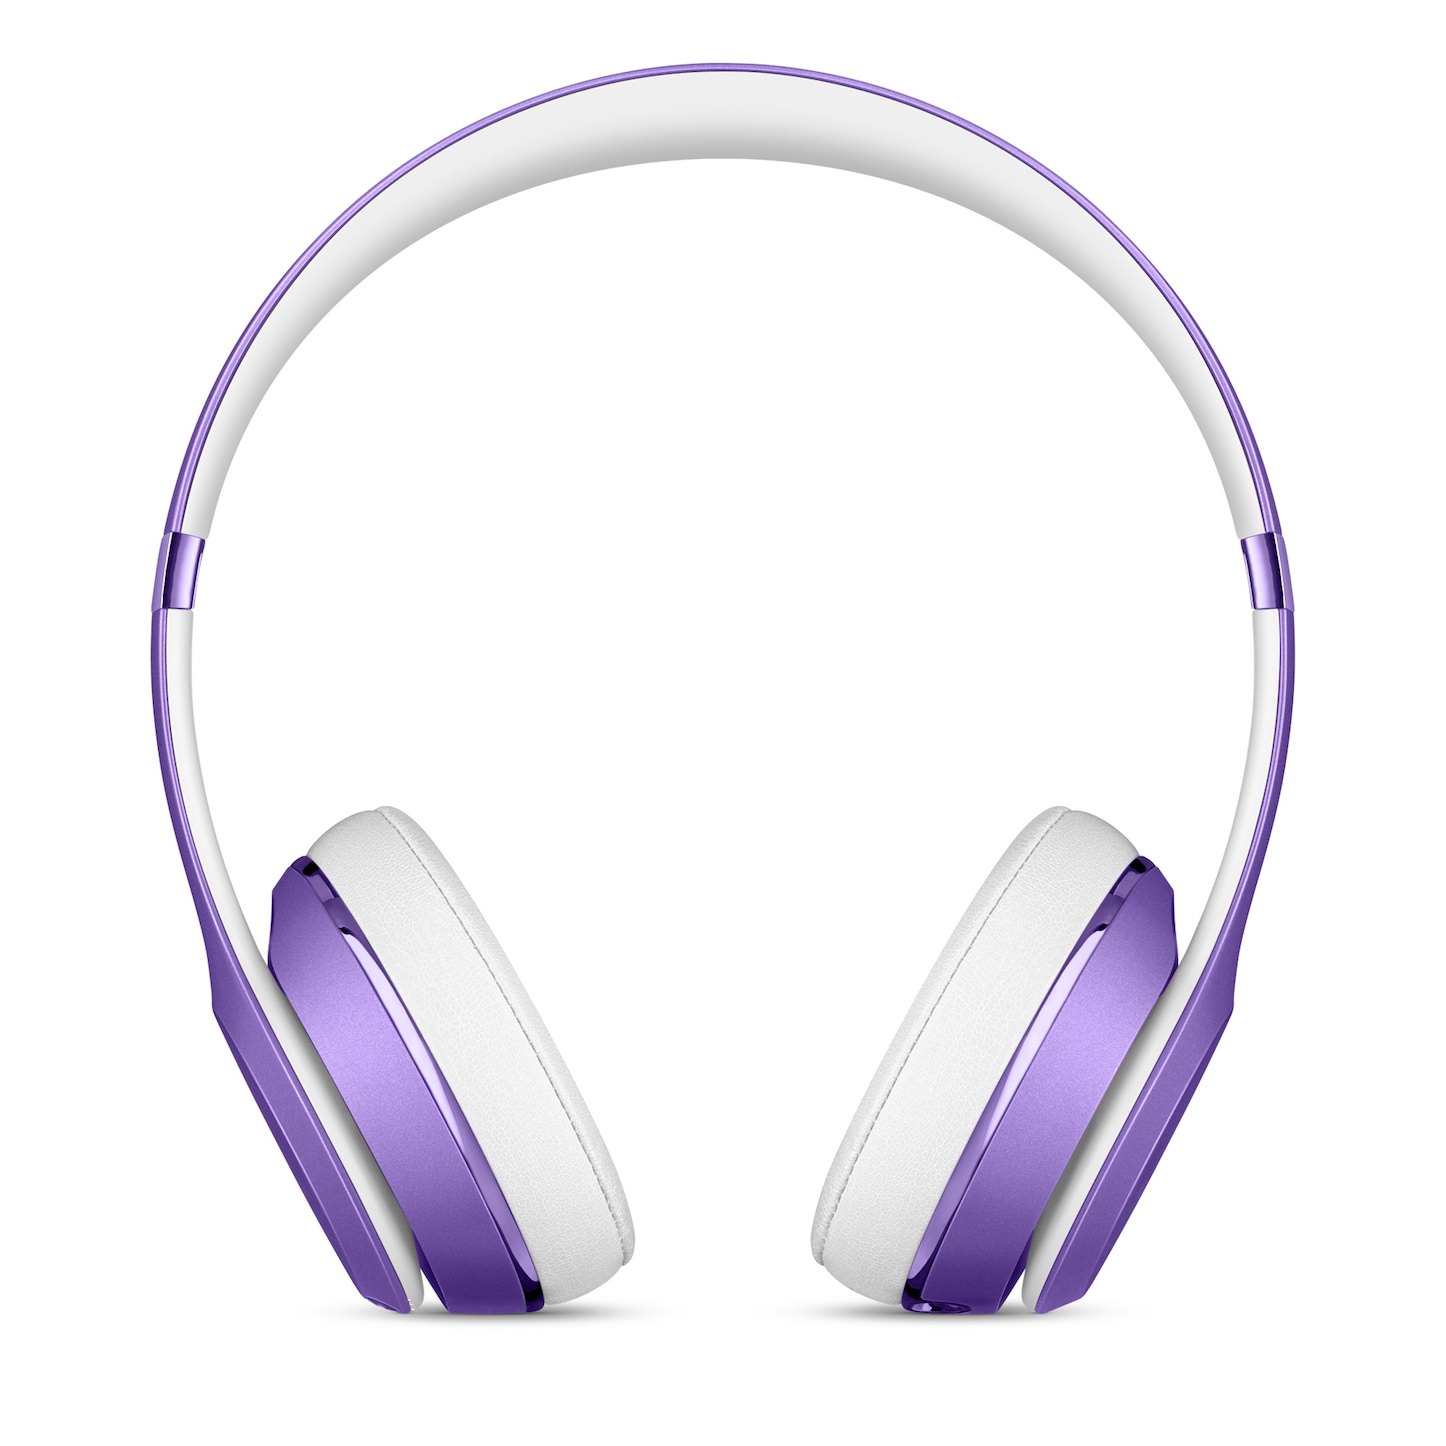 Beats-Solo3-Wireless-On-Ear-Headphones-Ultra-Violet-Collections-1.jpg